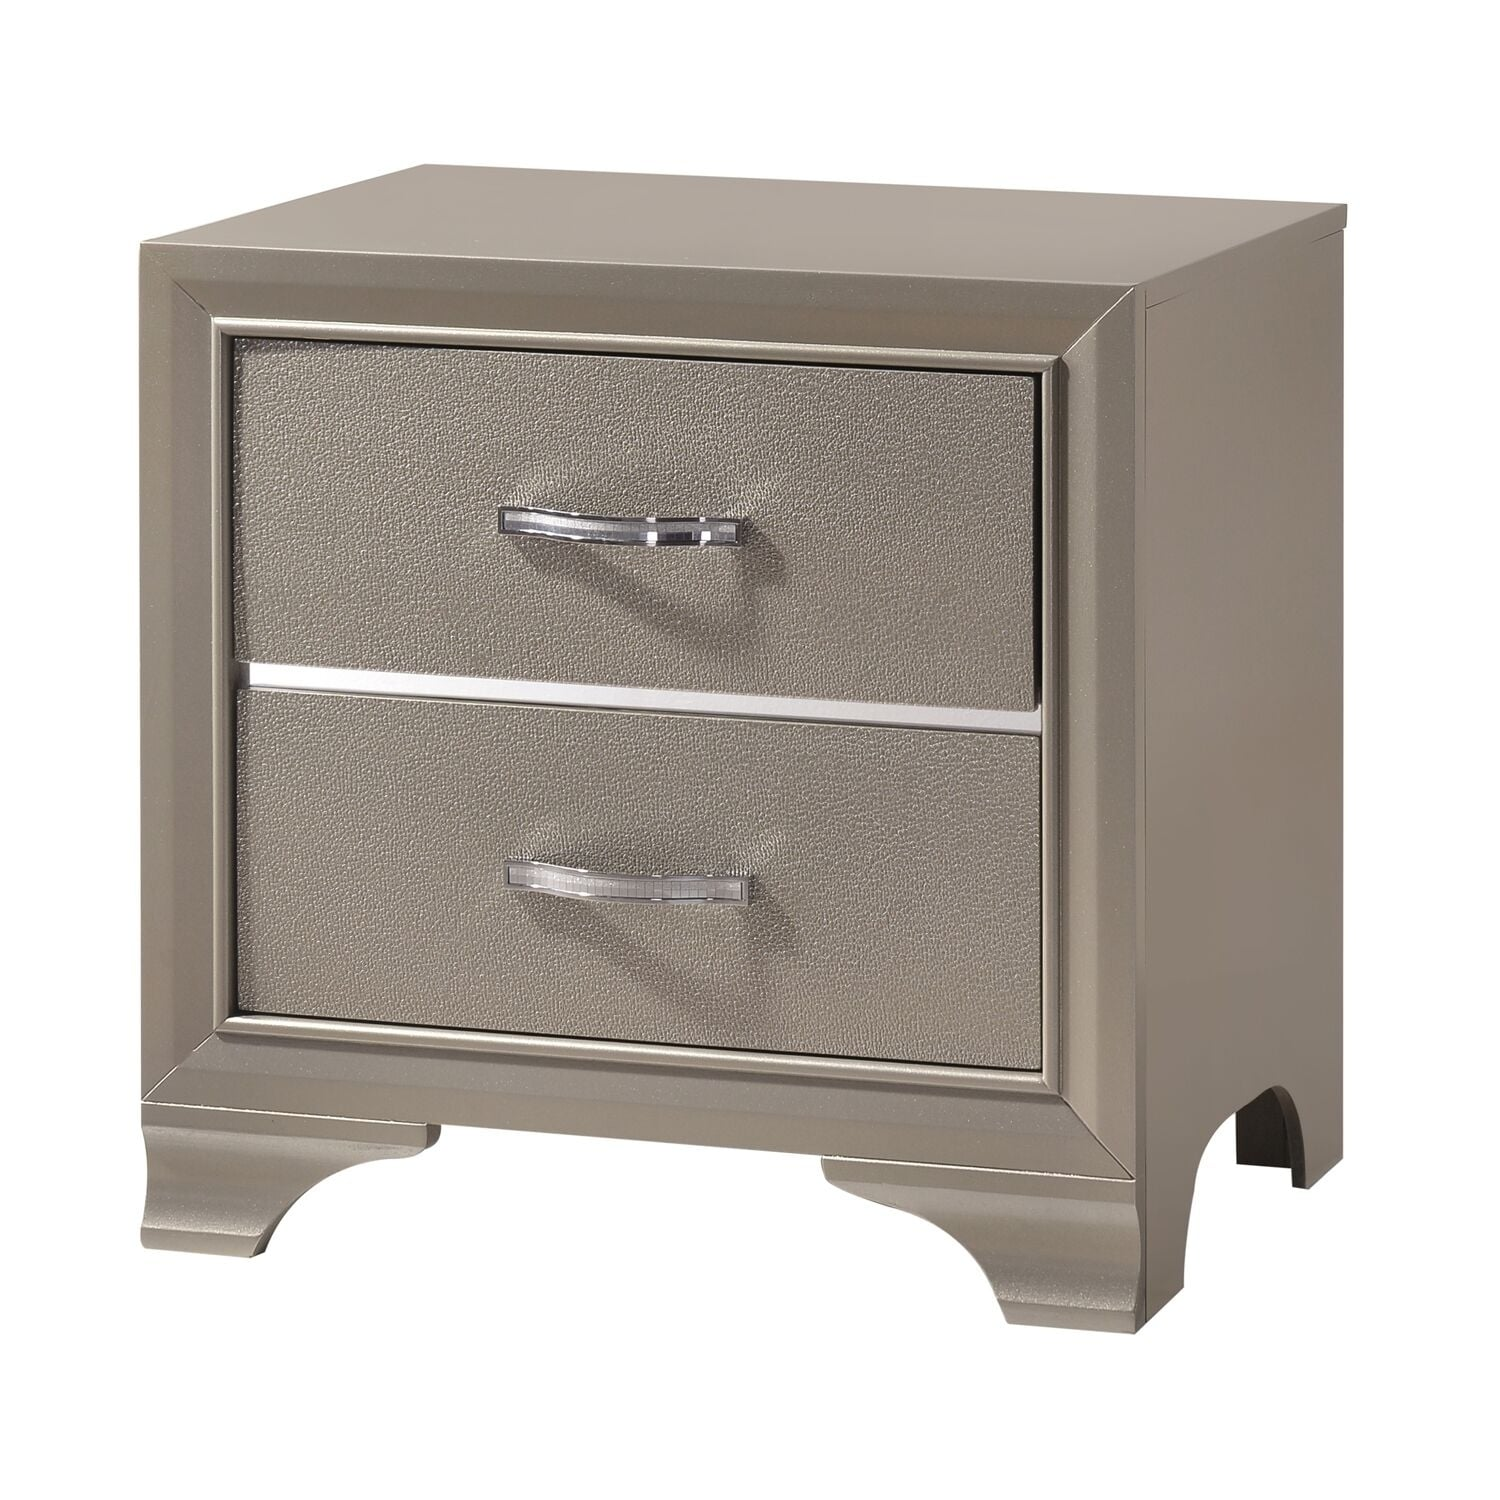 Buy Gold Mirrored Finish Nightstands Bedside Tables